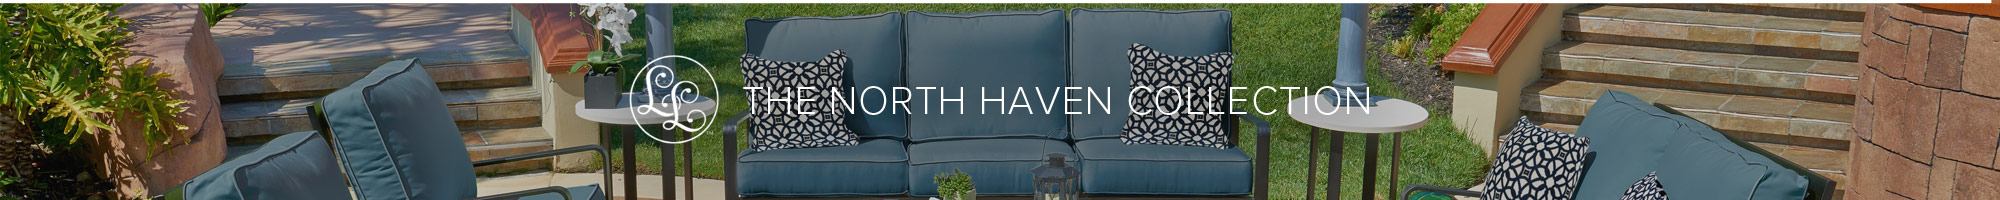 The North Haven Collection by Libby Langdon at Sun & Ski